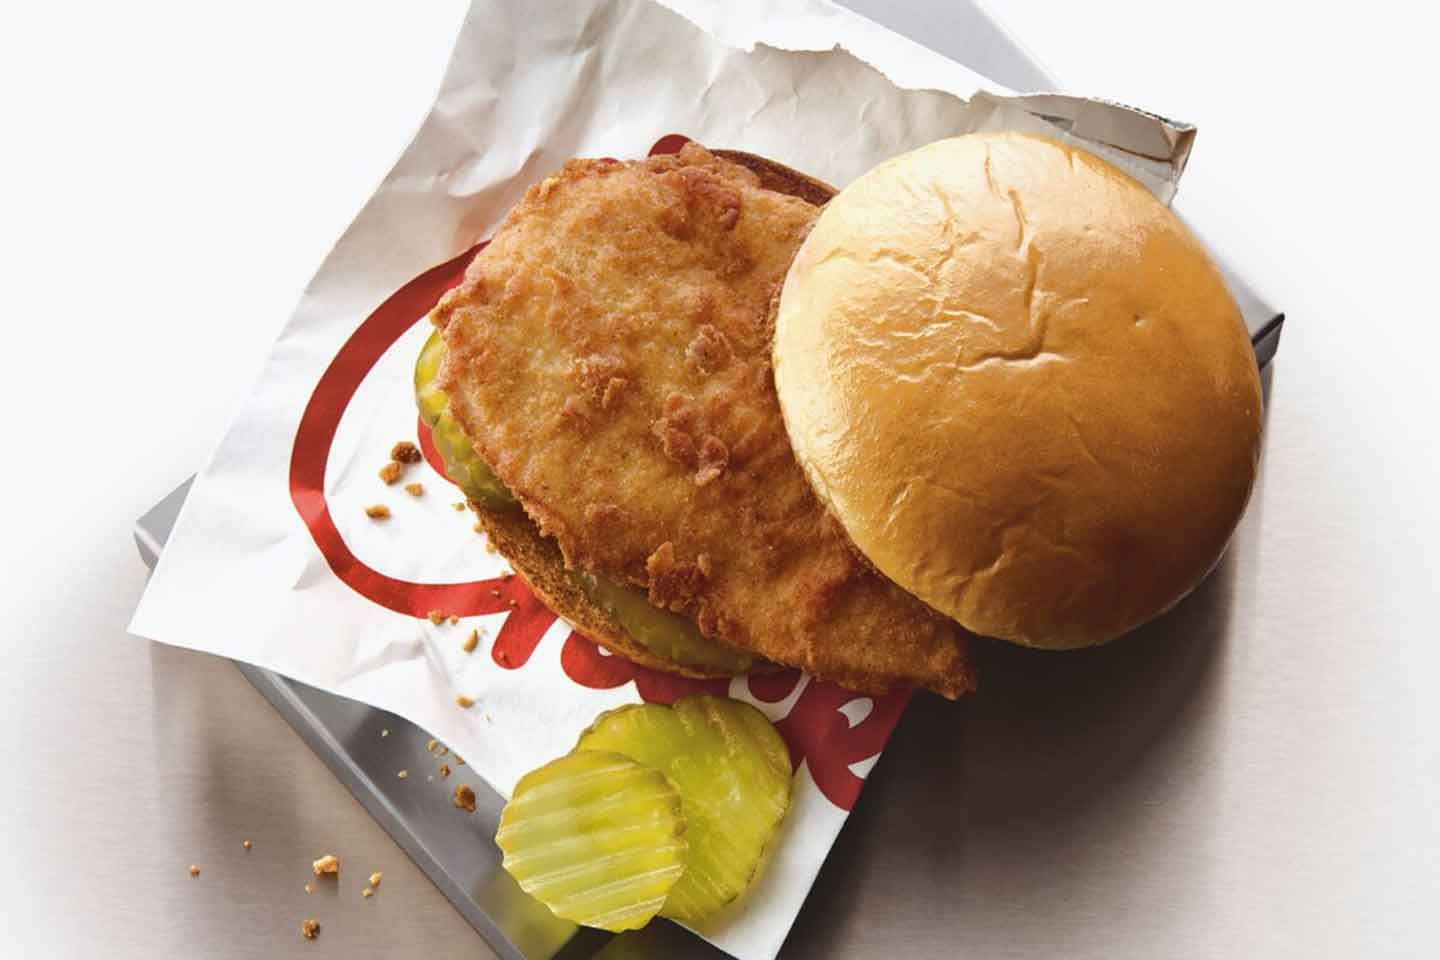 Chick-fil-A is committed to quality food Chick-fil-A is committed to quality food new pictures